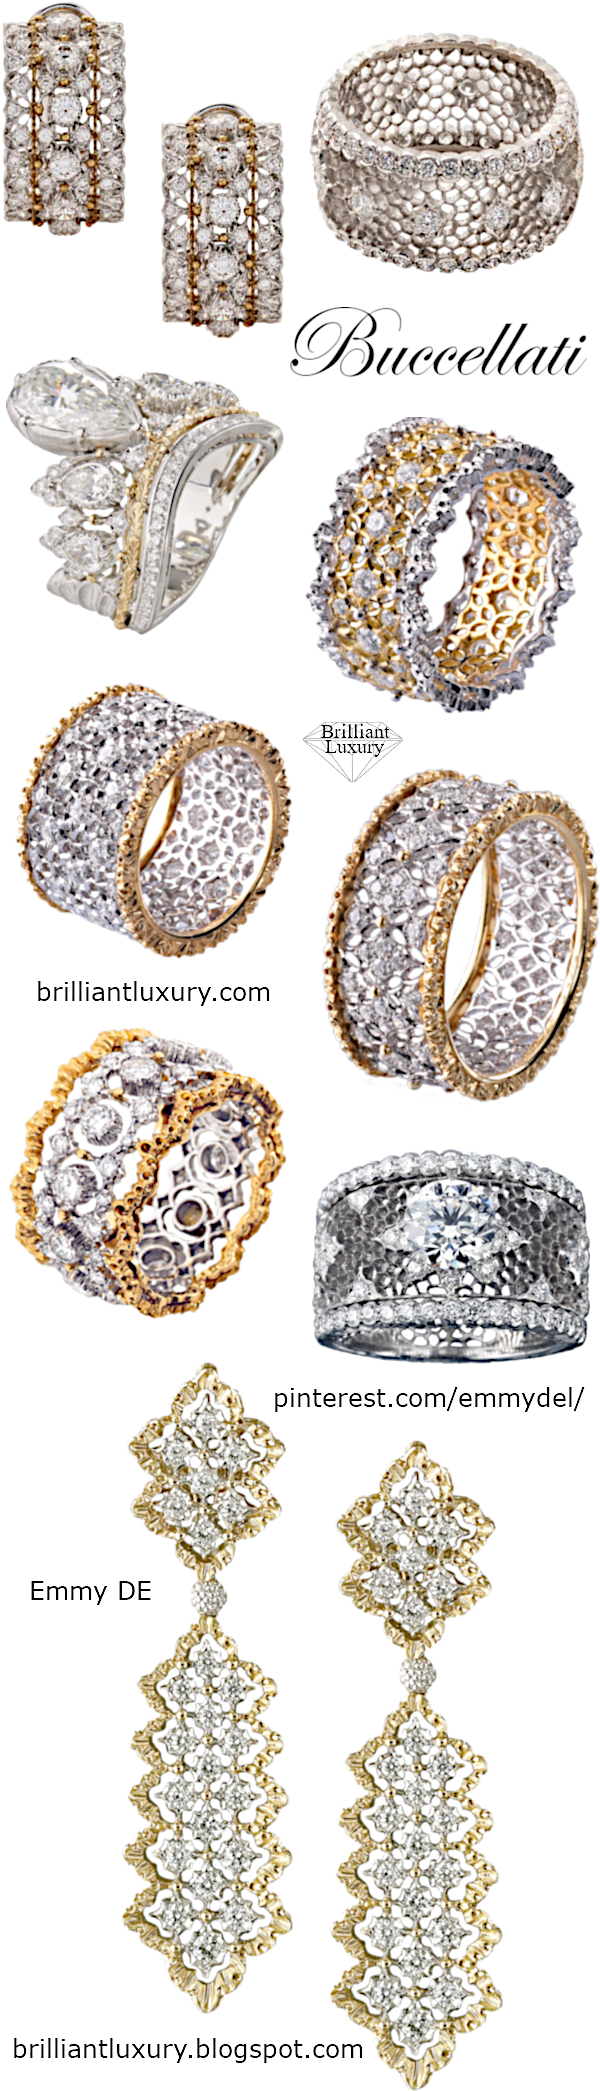 Buccellati Jewelry Collection #brilliantluxury